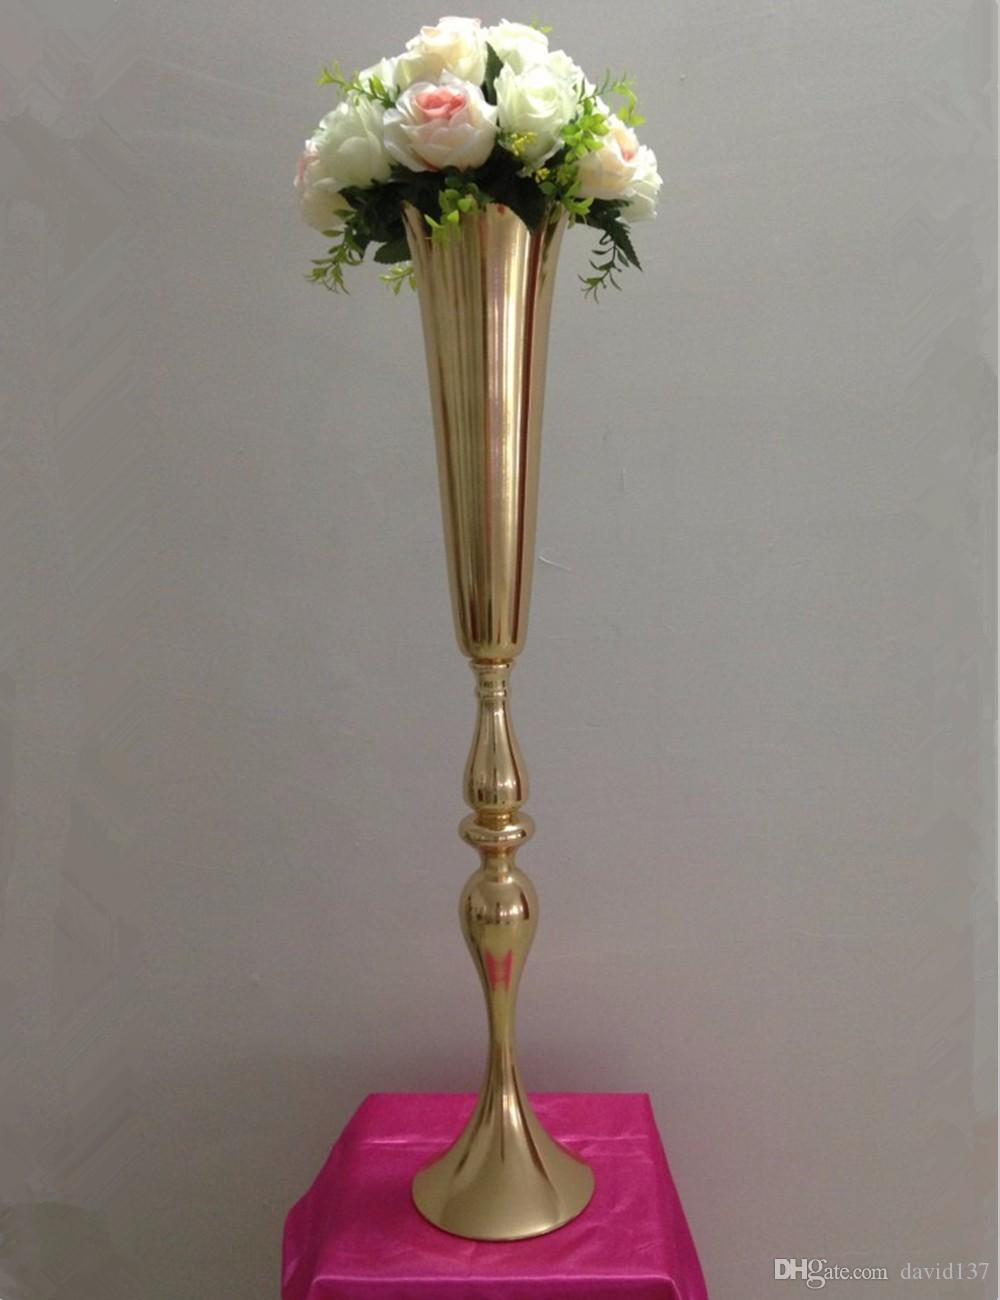 Gold Tall Wedding Centerpiece Tall Flower Vase For Wedding Table Centerpiece 50th Birthday Party